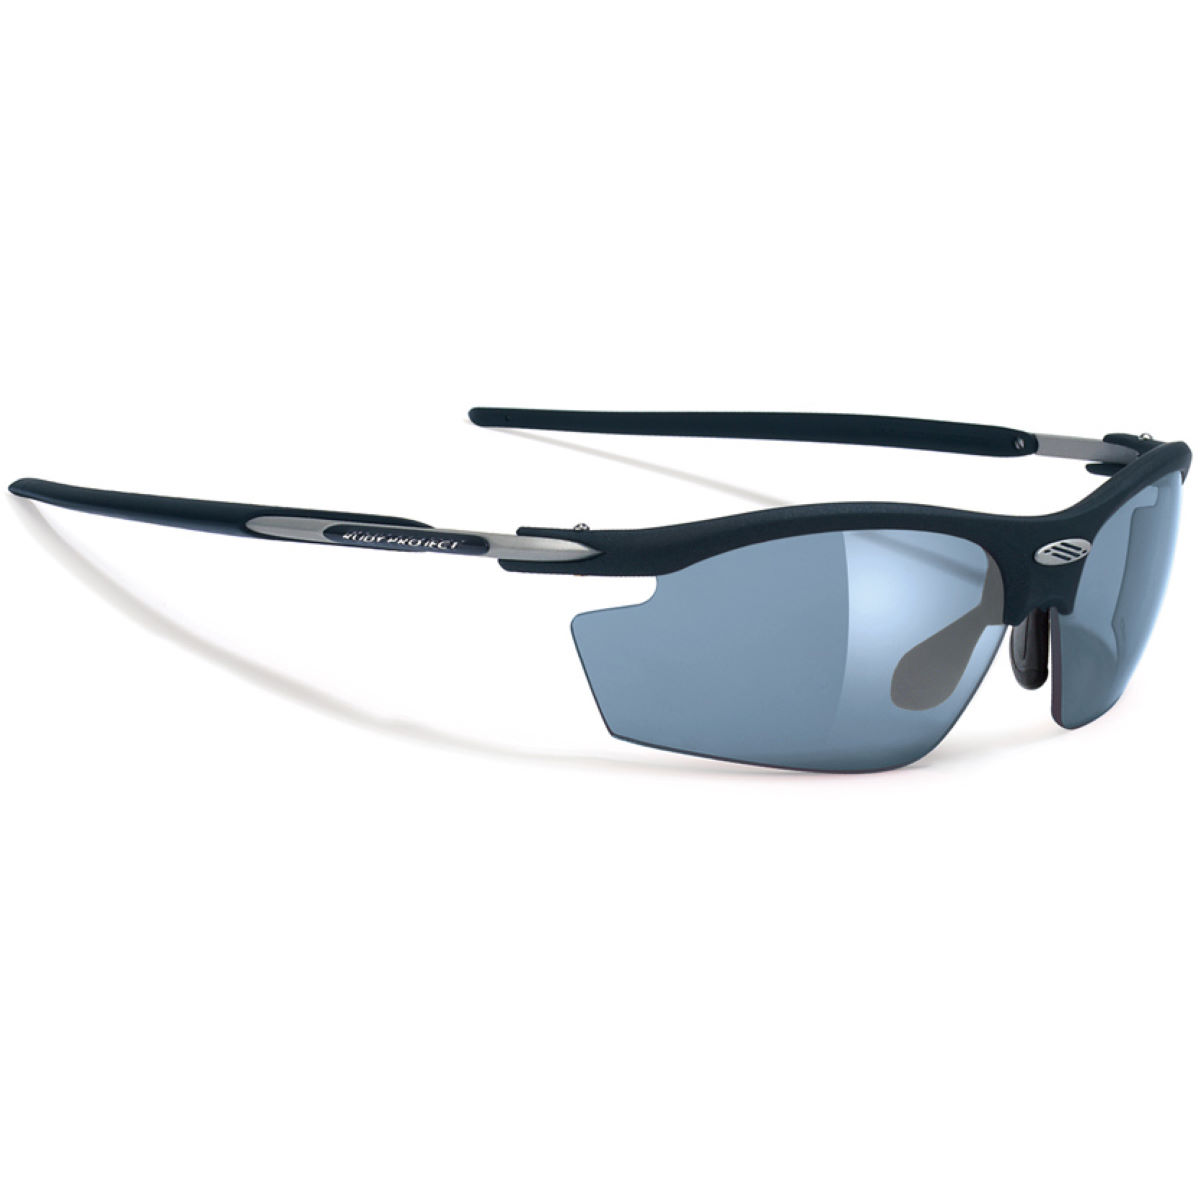 Rudy Project Rydon Sunglasses